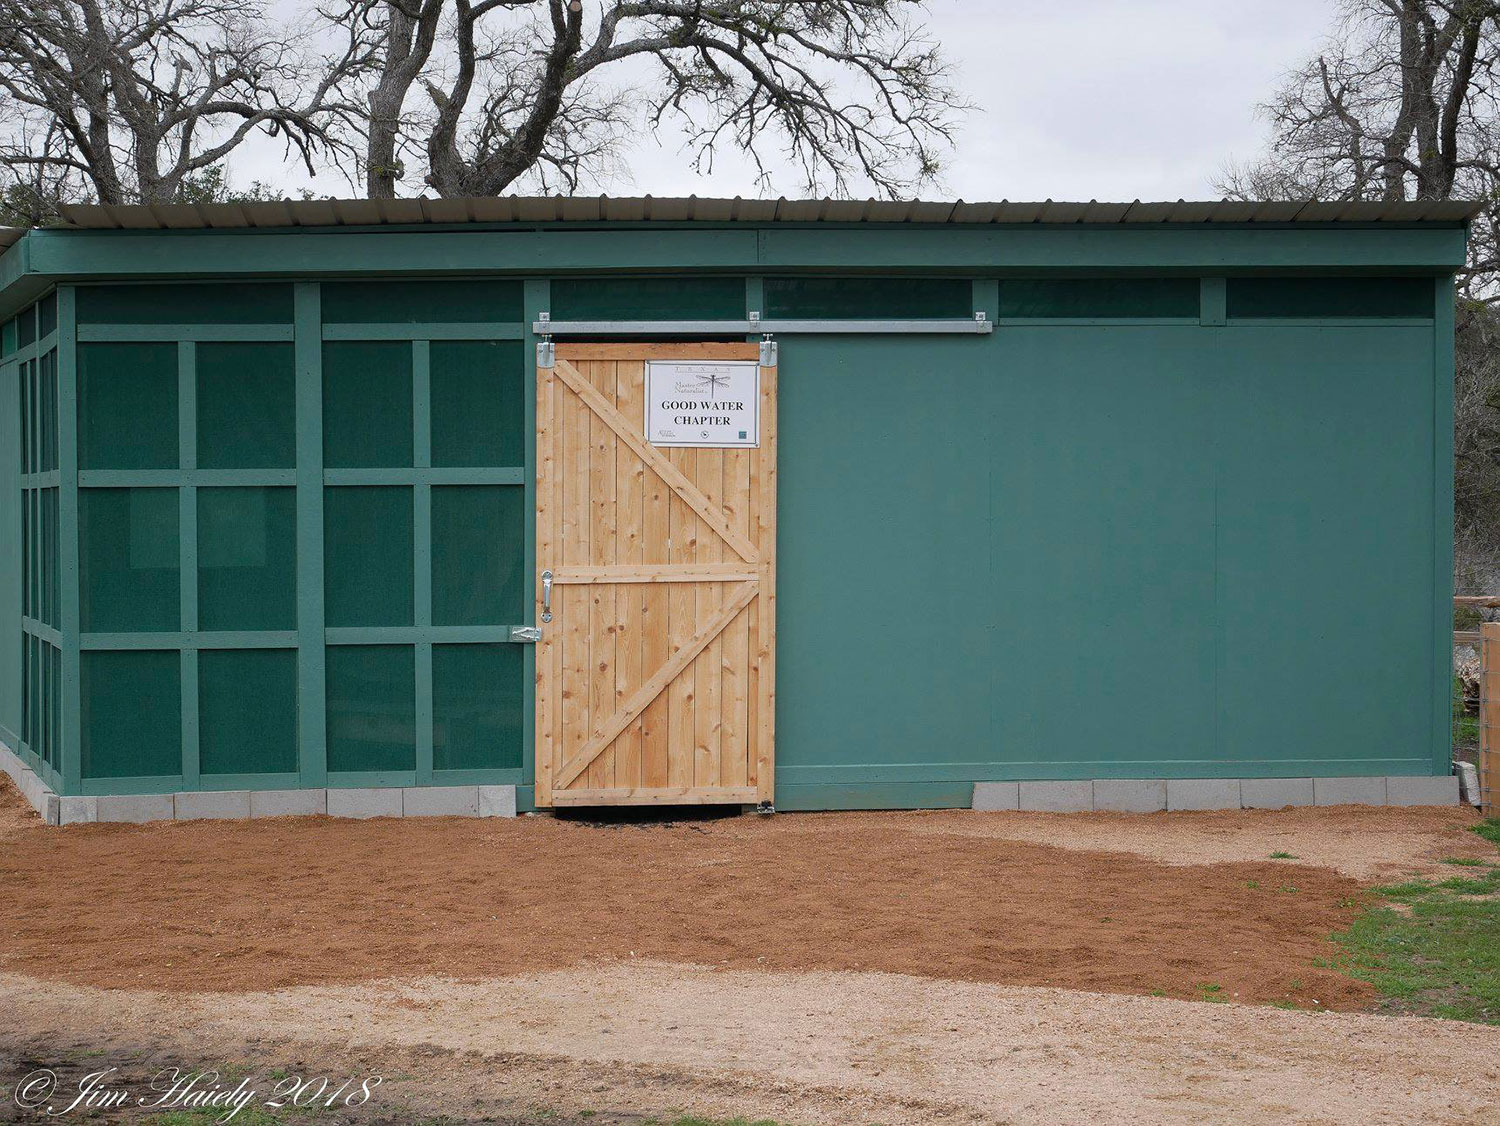 Wildlife Viewing Blind at Garey Park in Georgetown, TX with Good Water Master Naturalists sign on the door